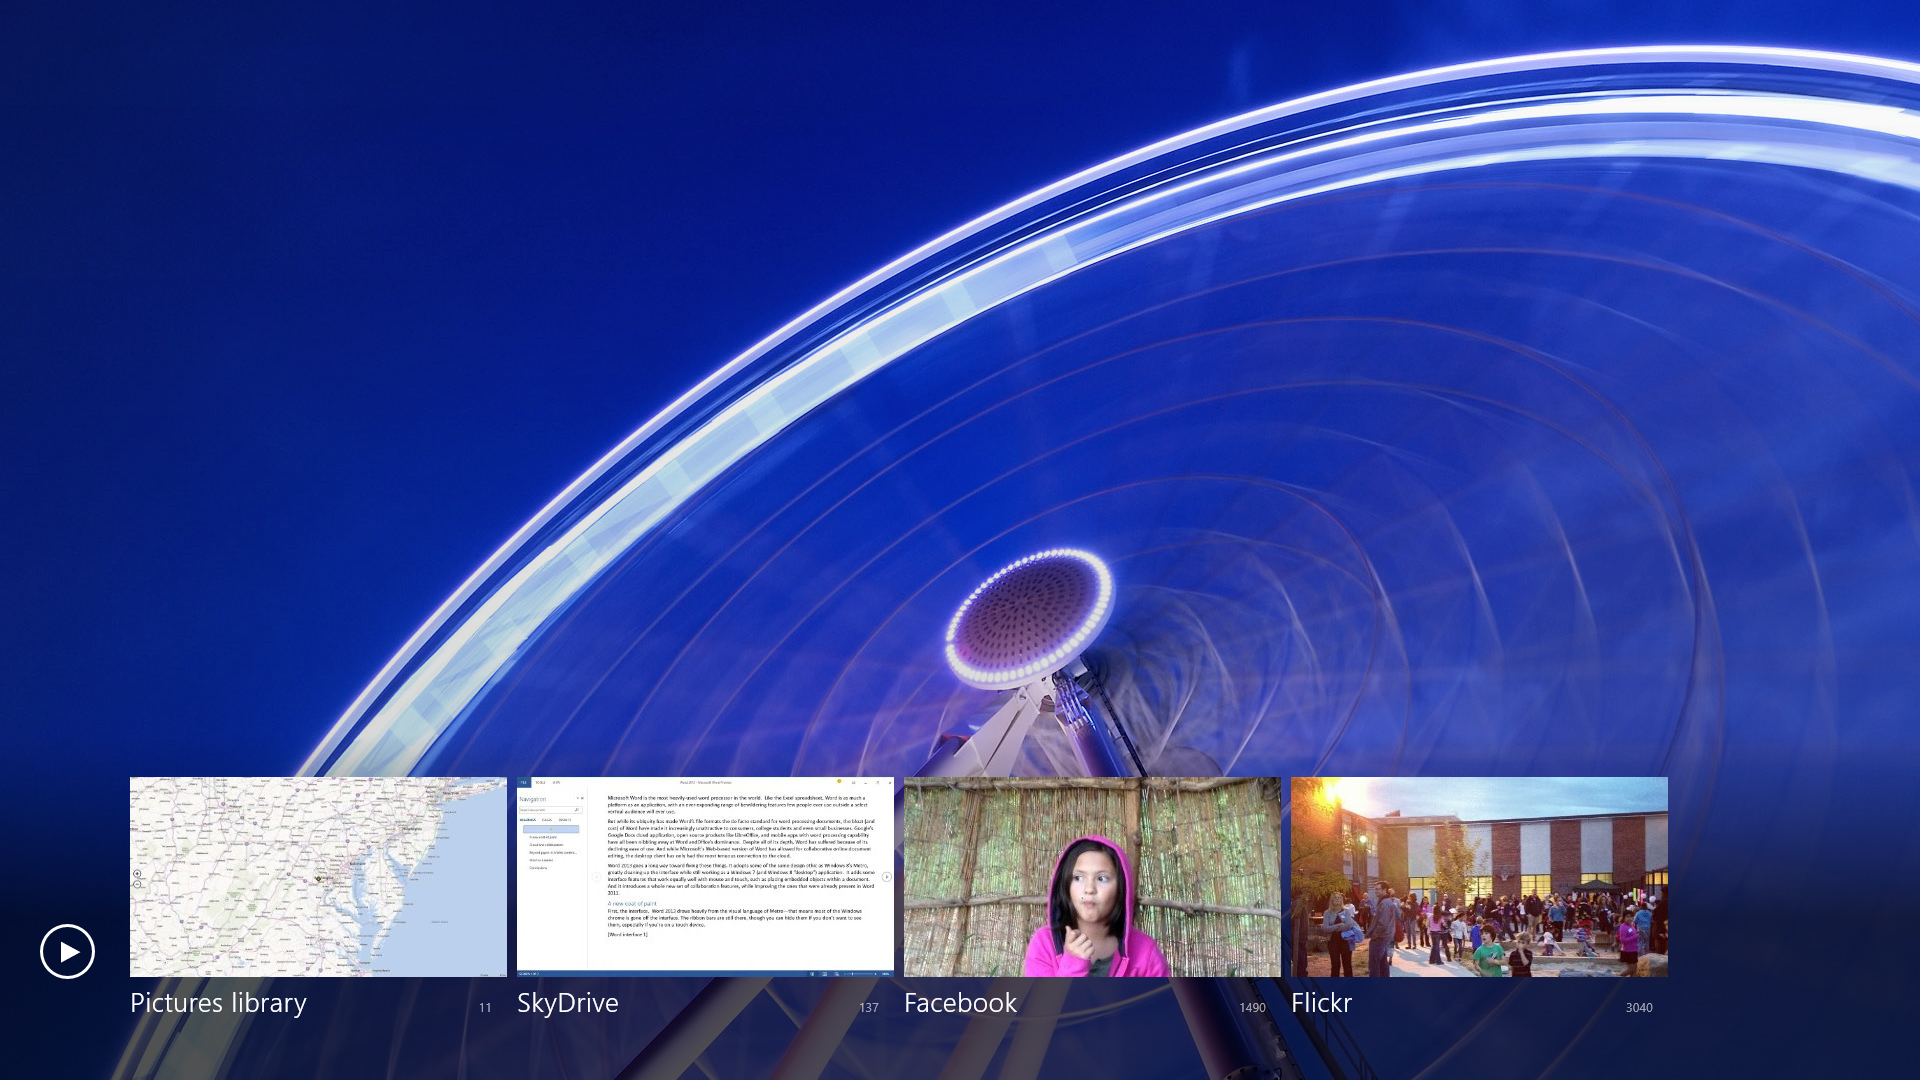 The Metro Photos app accesses images from the services you link to your Microsoft account (Facebook, Flickr, and SkyDrive), as well as your local image library.